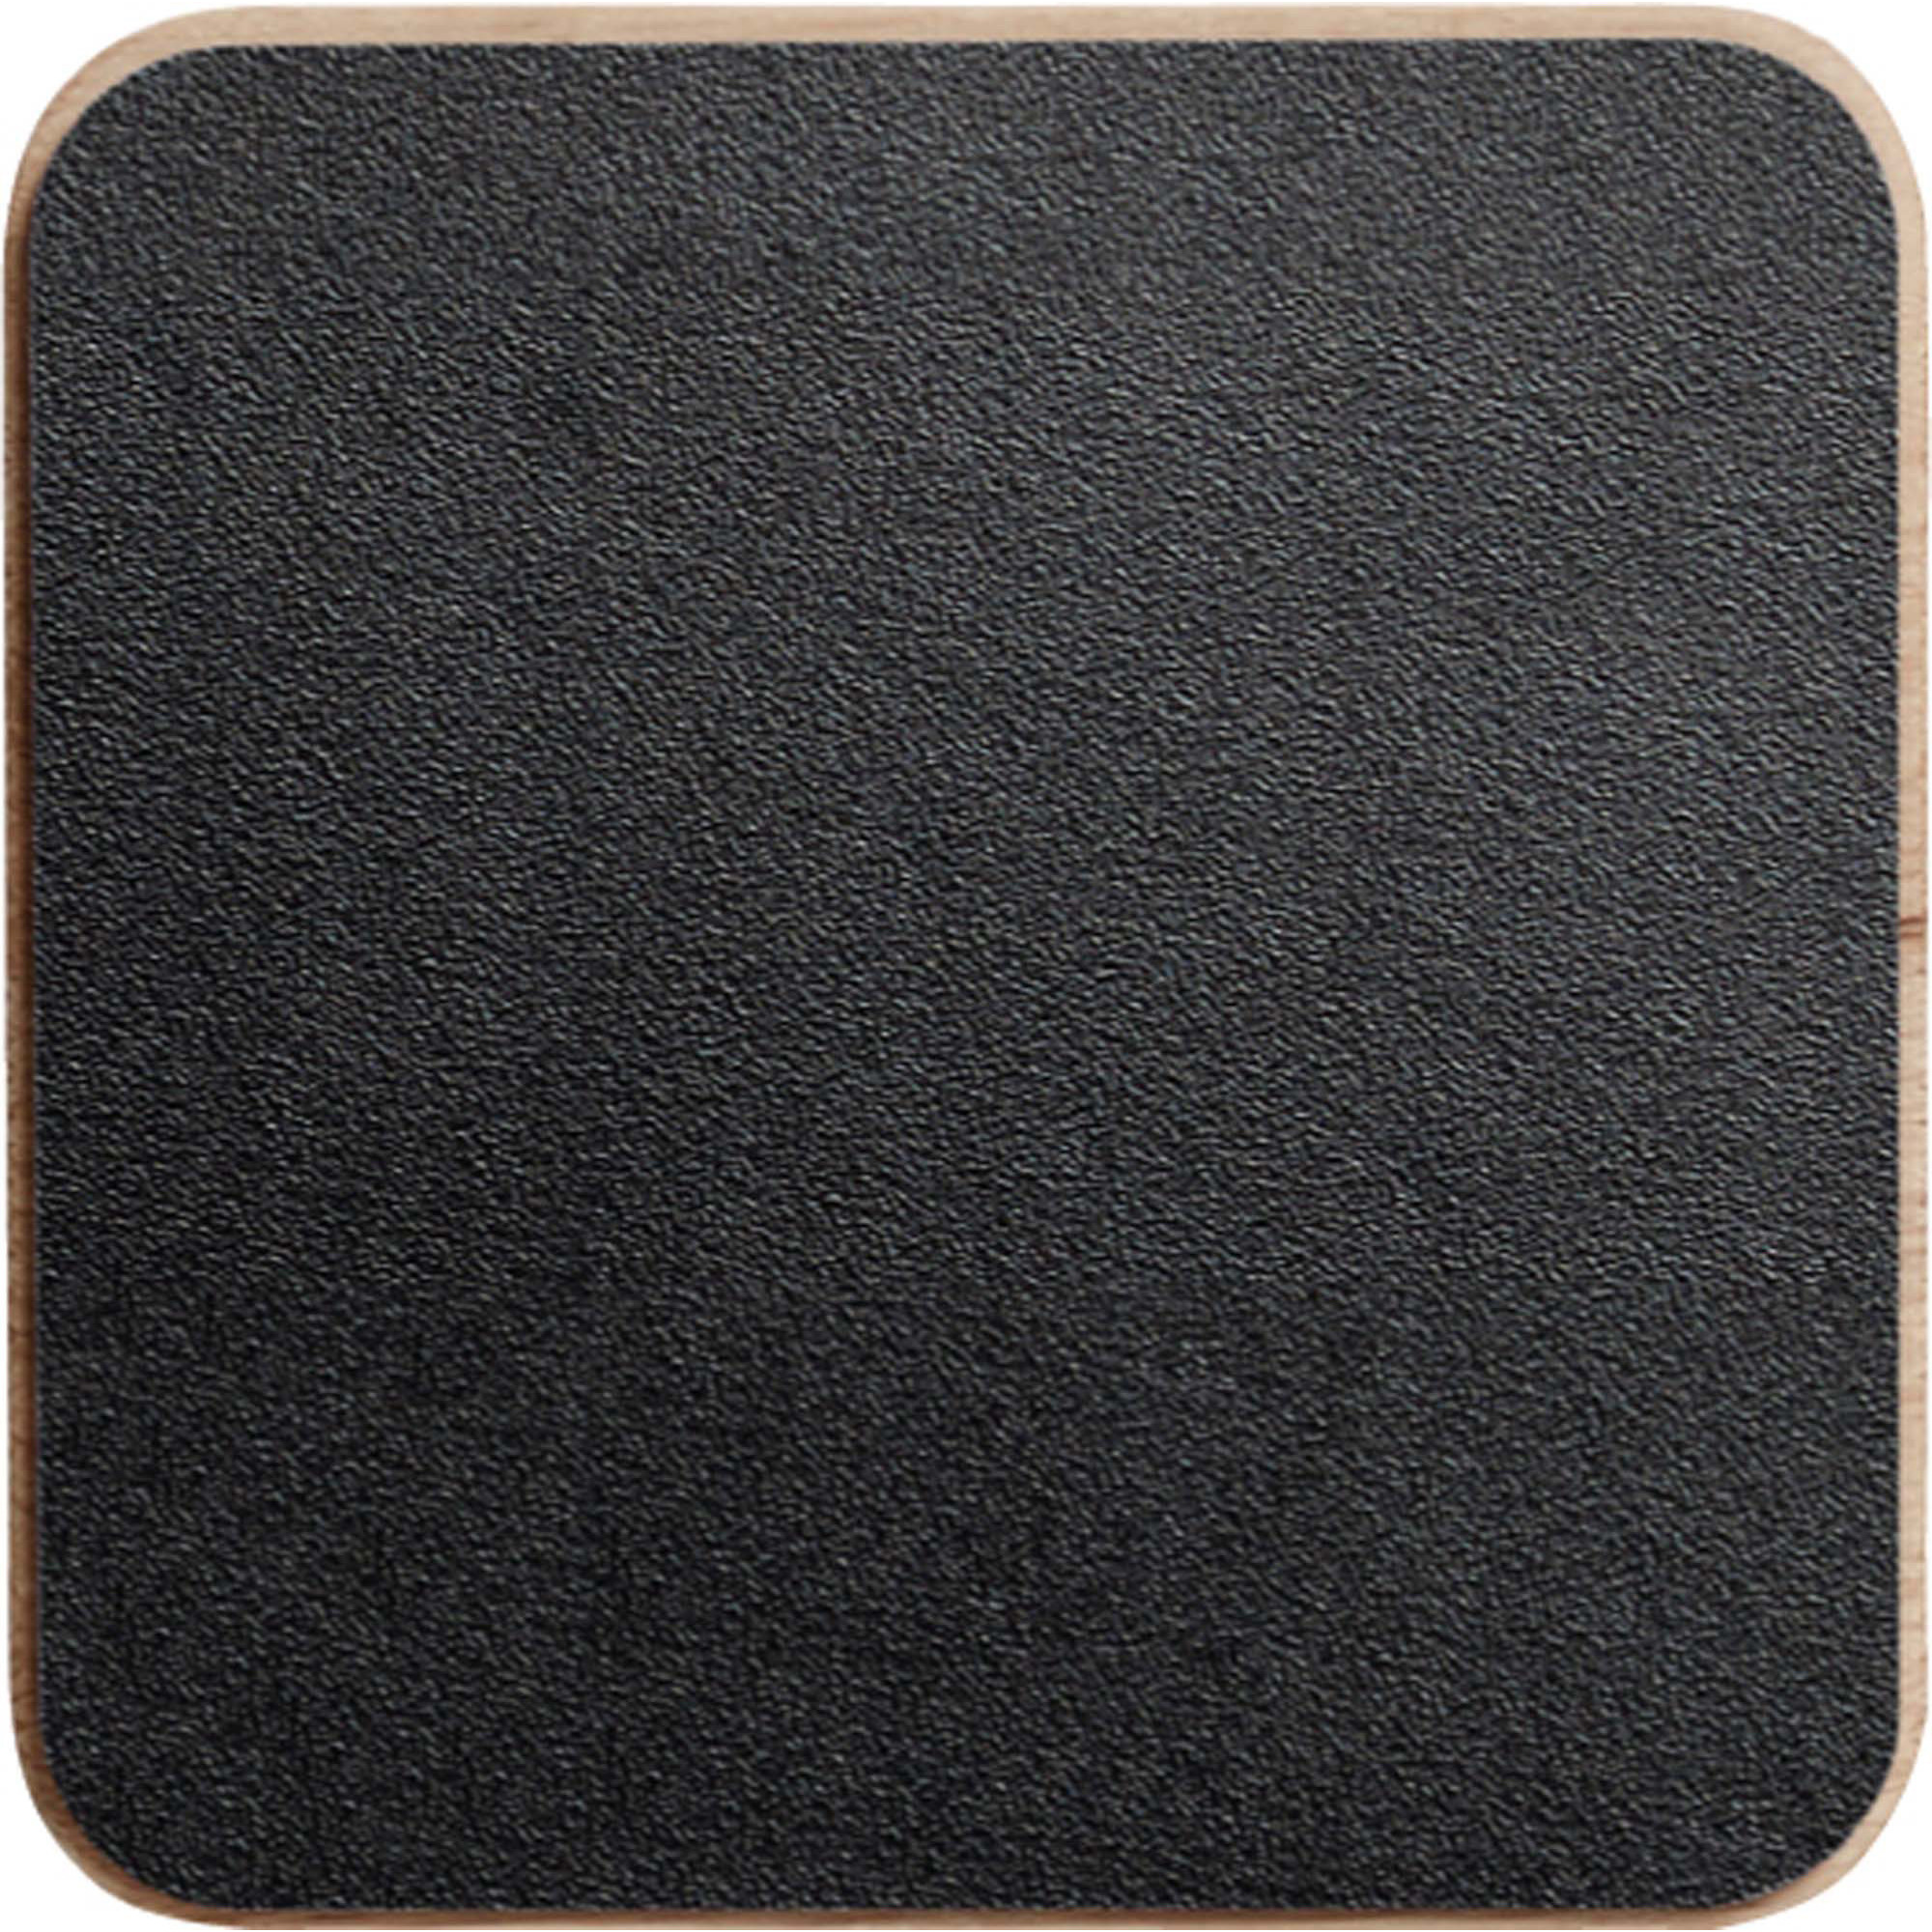 Bilde av Andersen Furniture Create Me Lokk 12 X 12 Black